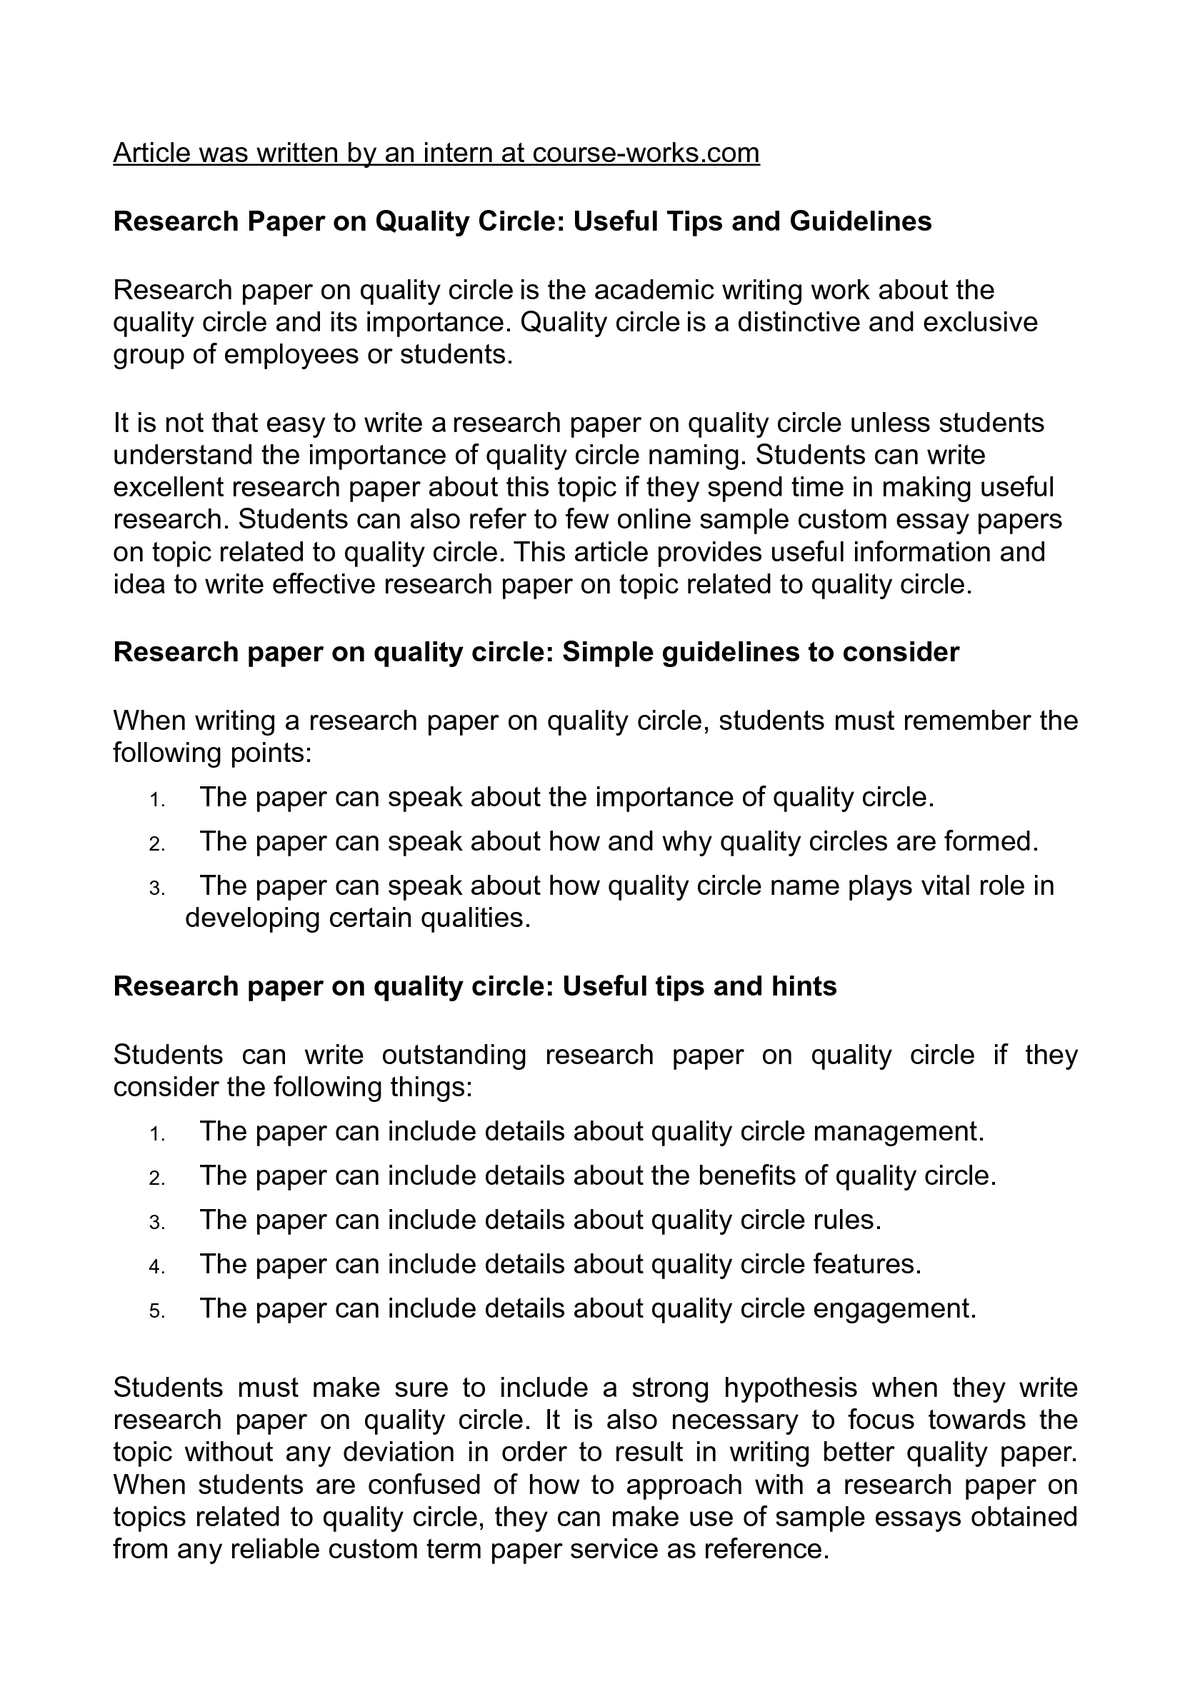 008 Easy Topics For Research Paper Awful A In Philippines Persuasive Psychology Full